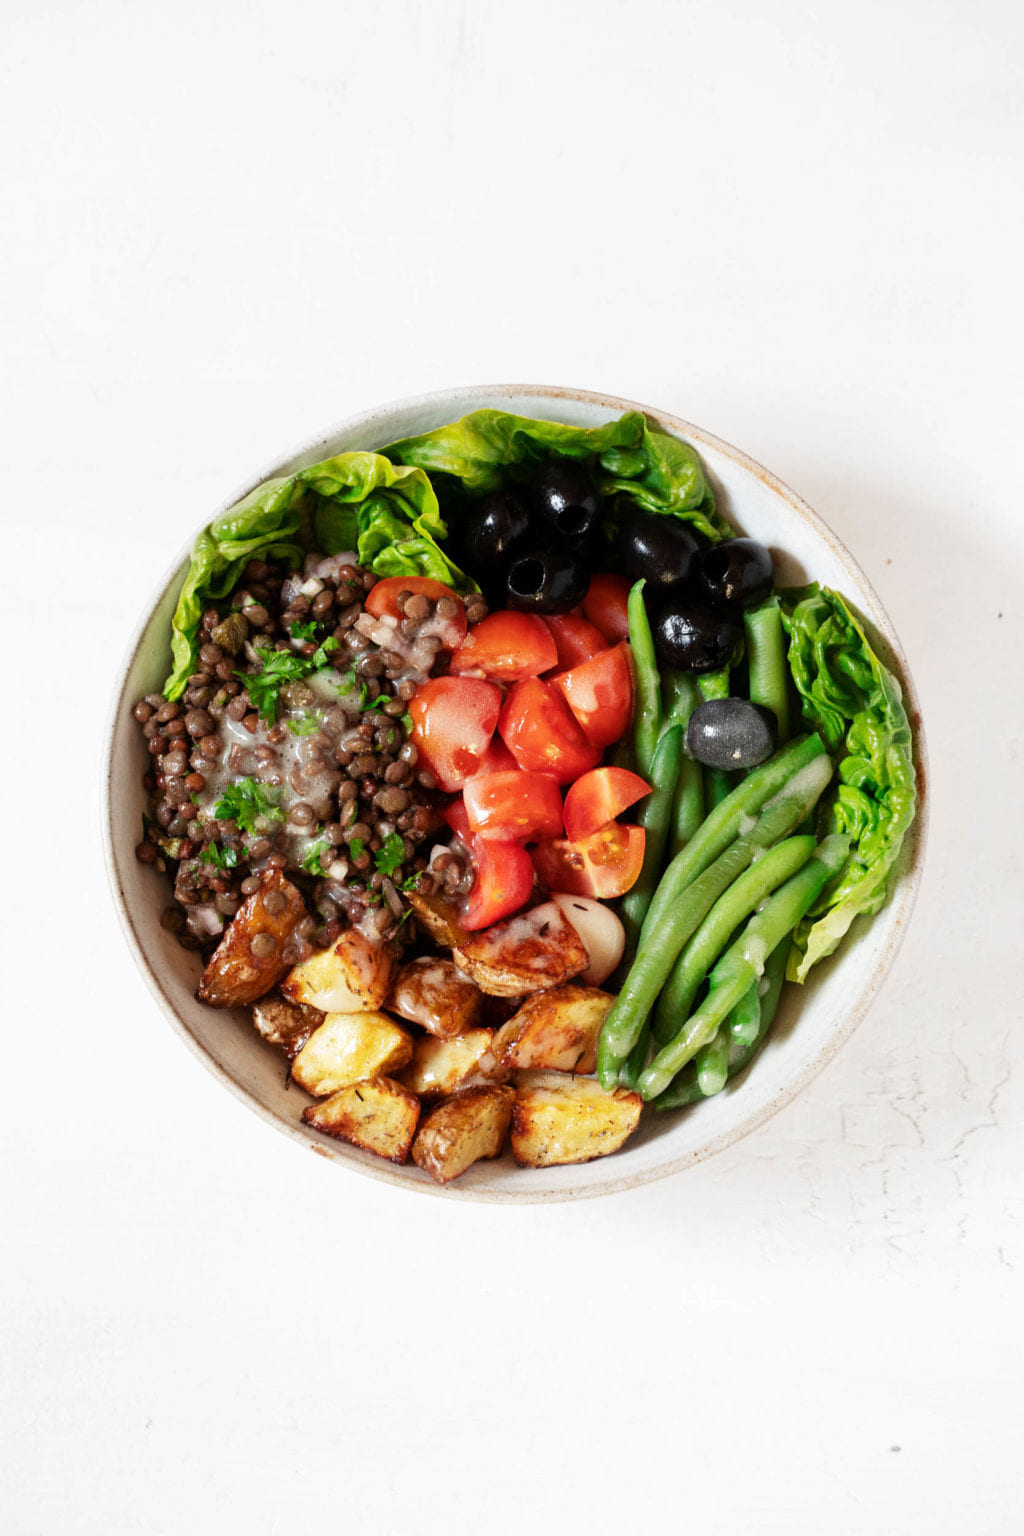 A bird's-eye view of a synthetic salad that has been made using a variety of colorful plant ingredients.